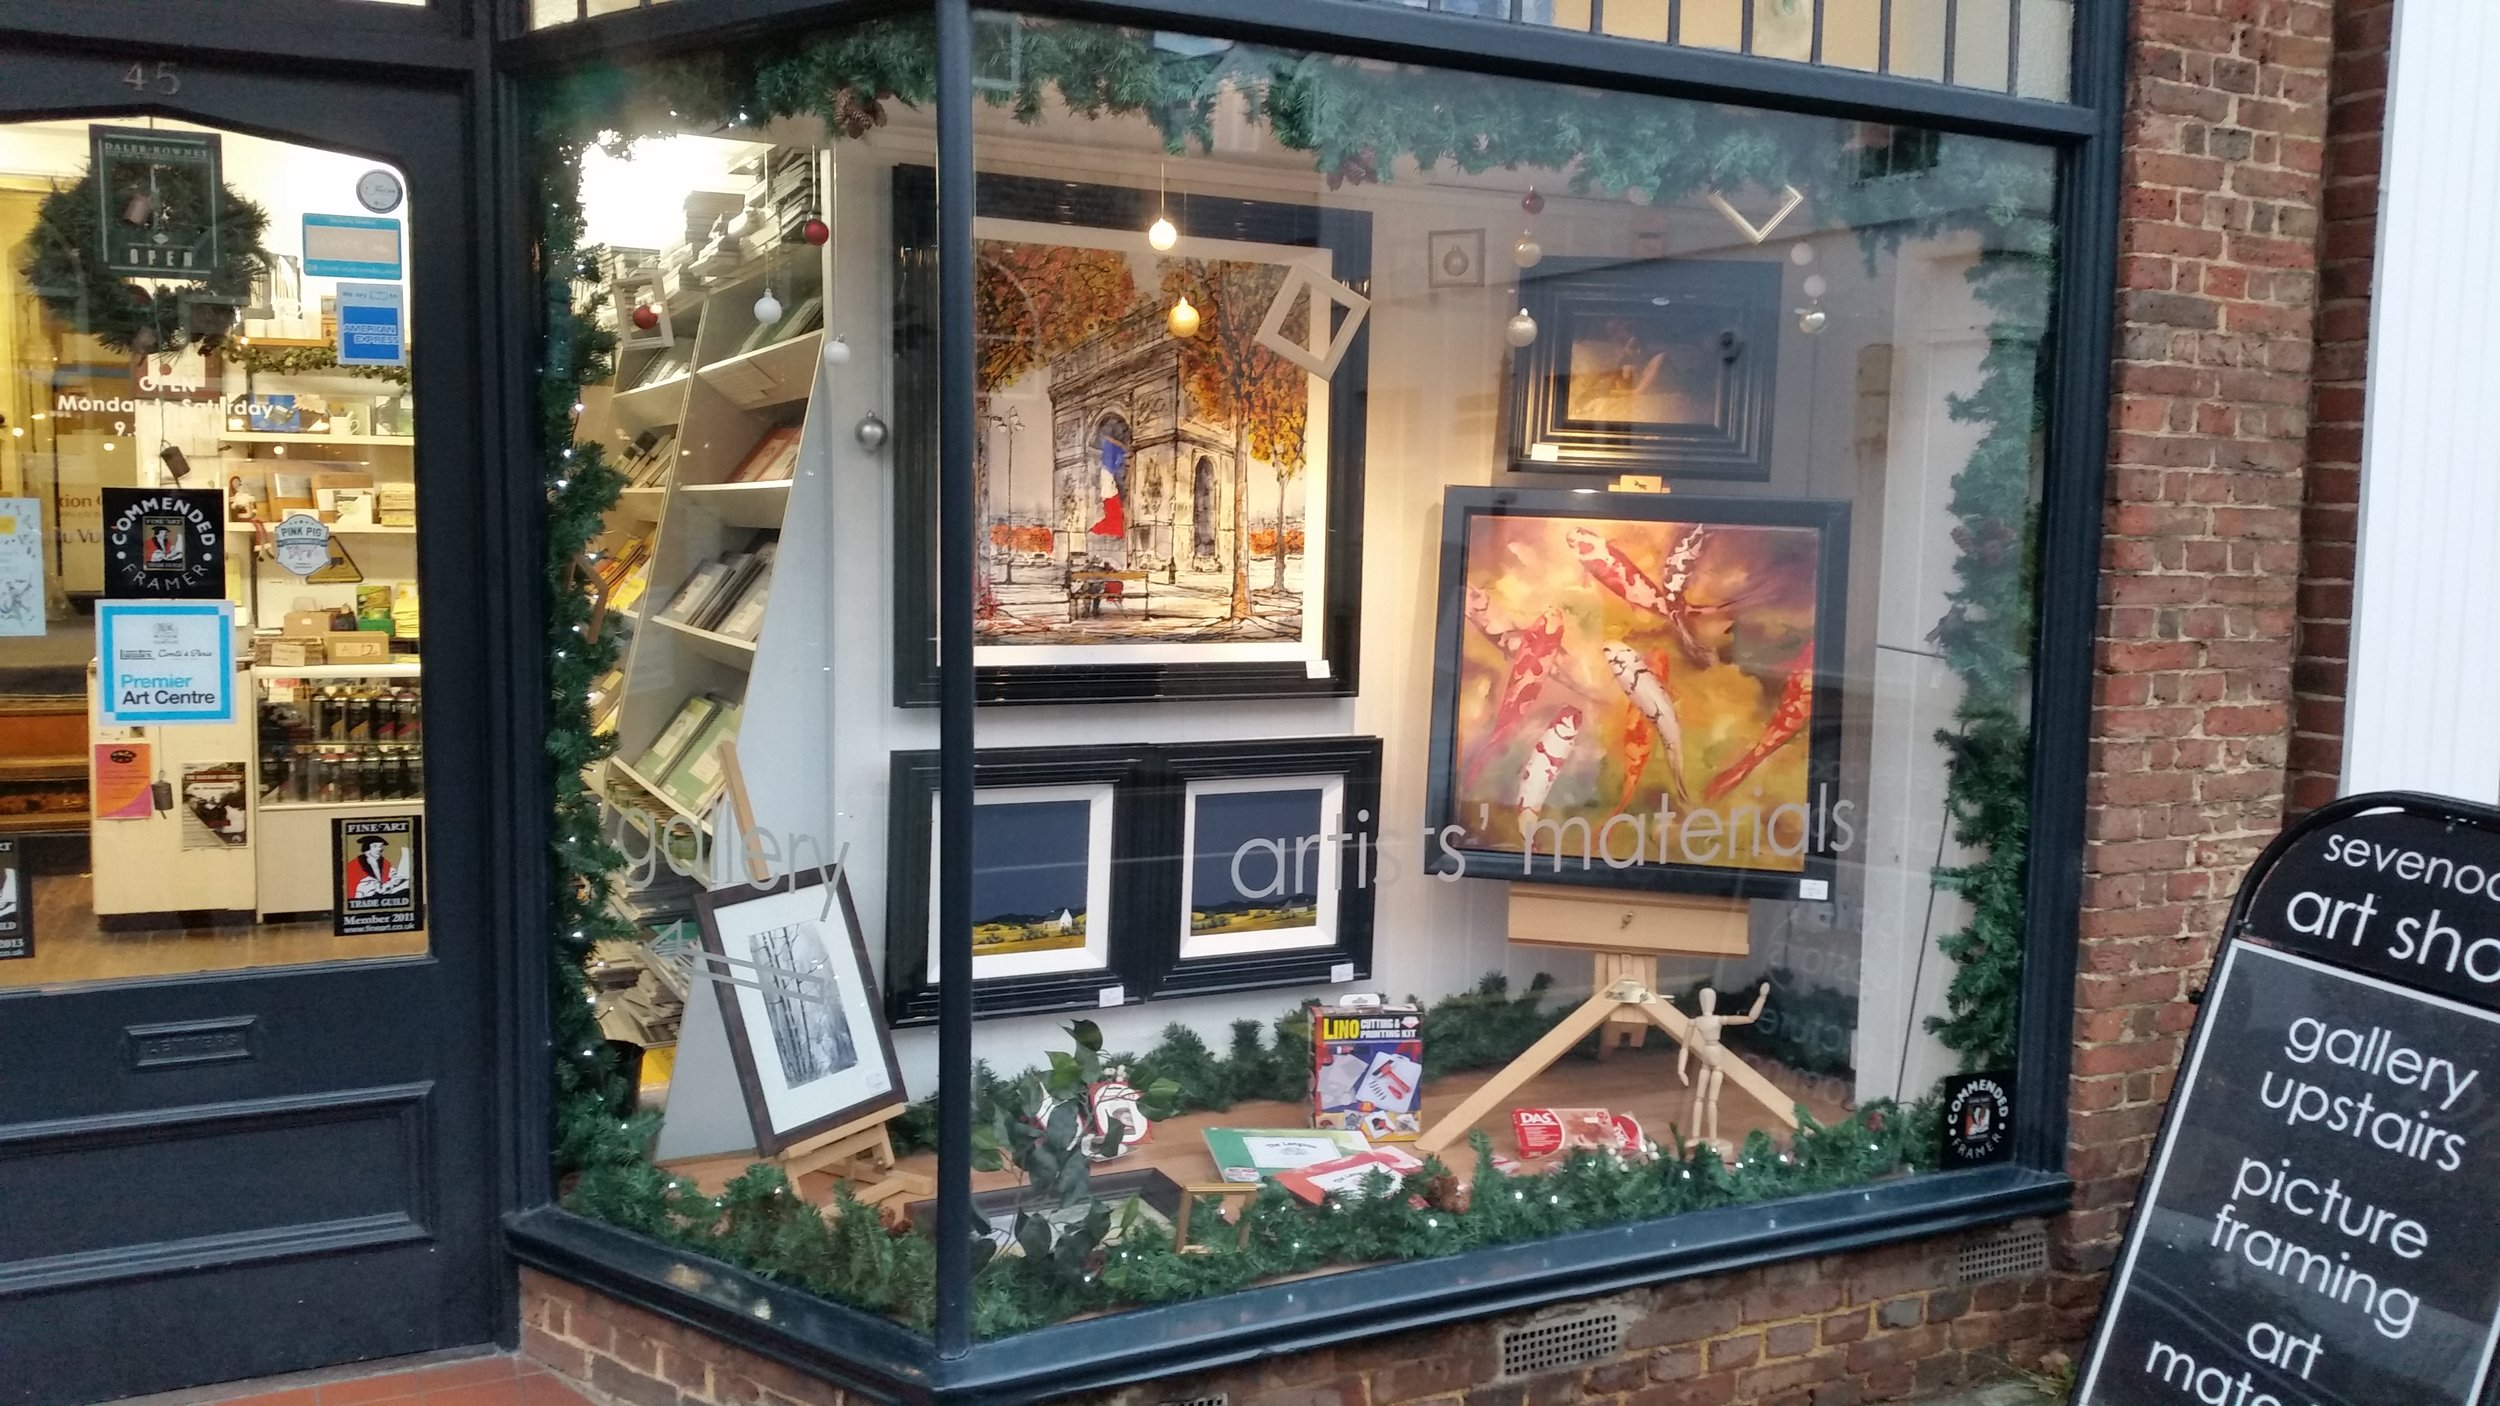 Work by Nigel Cooke and John Russel looking striking in black lacquer frames in our second window this week.